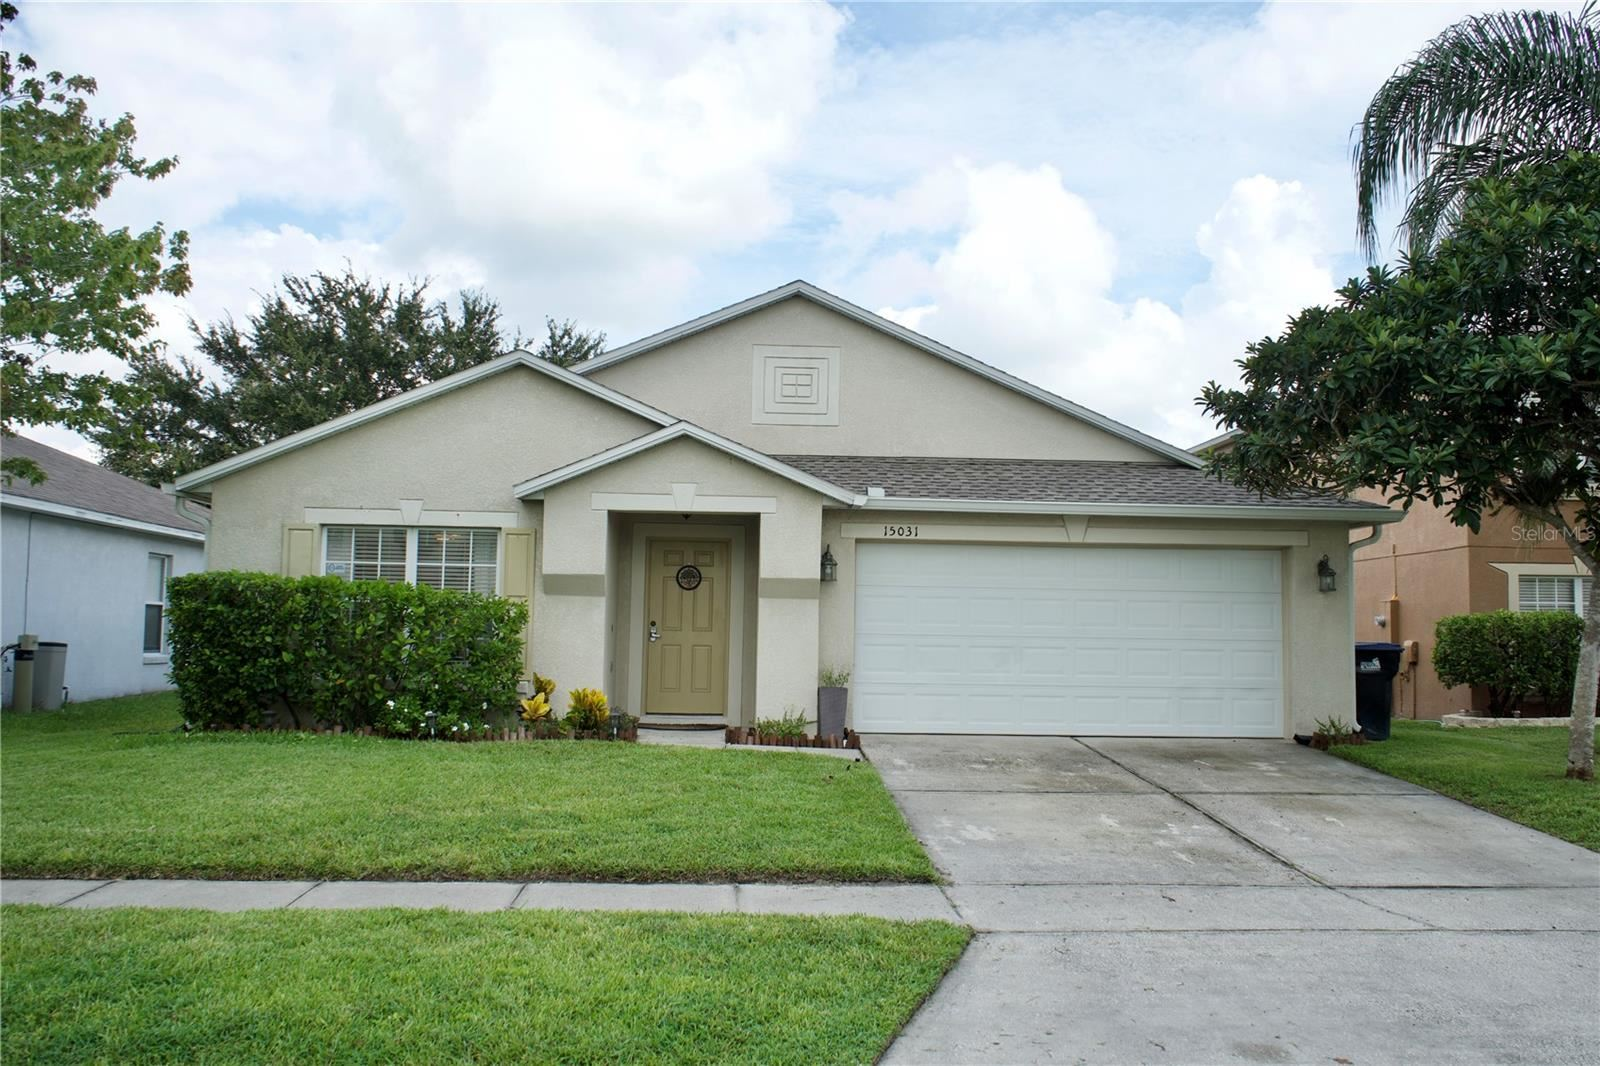 15031 WATERFORD CHASE PARKWAY, Orlando, FL 32828 - #: O5974366